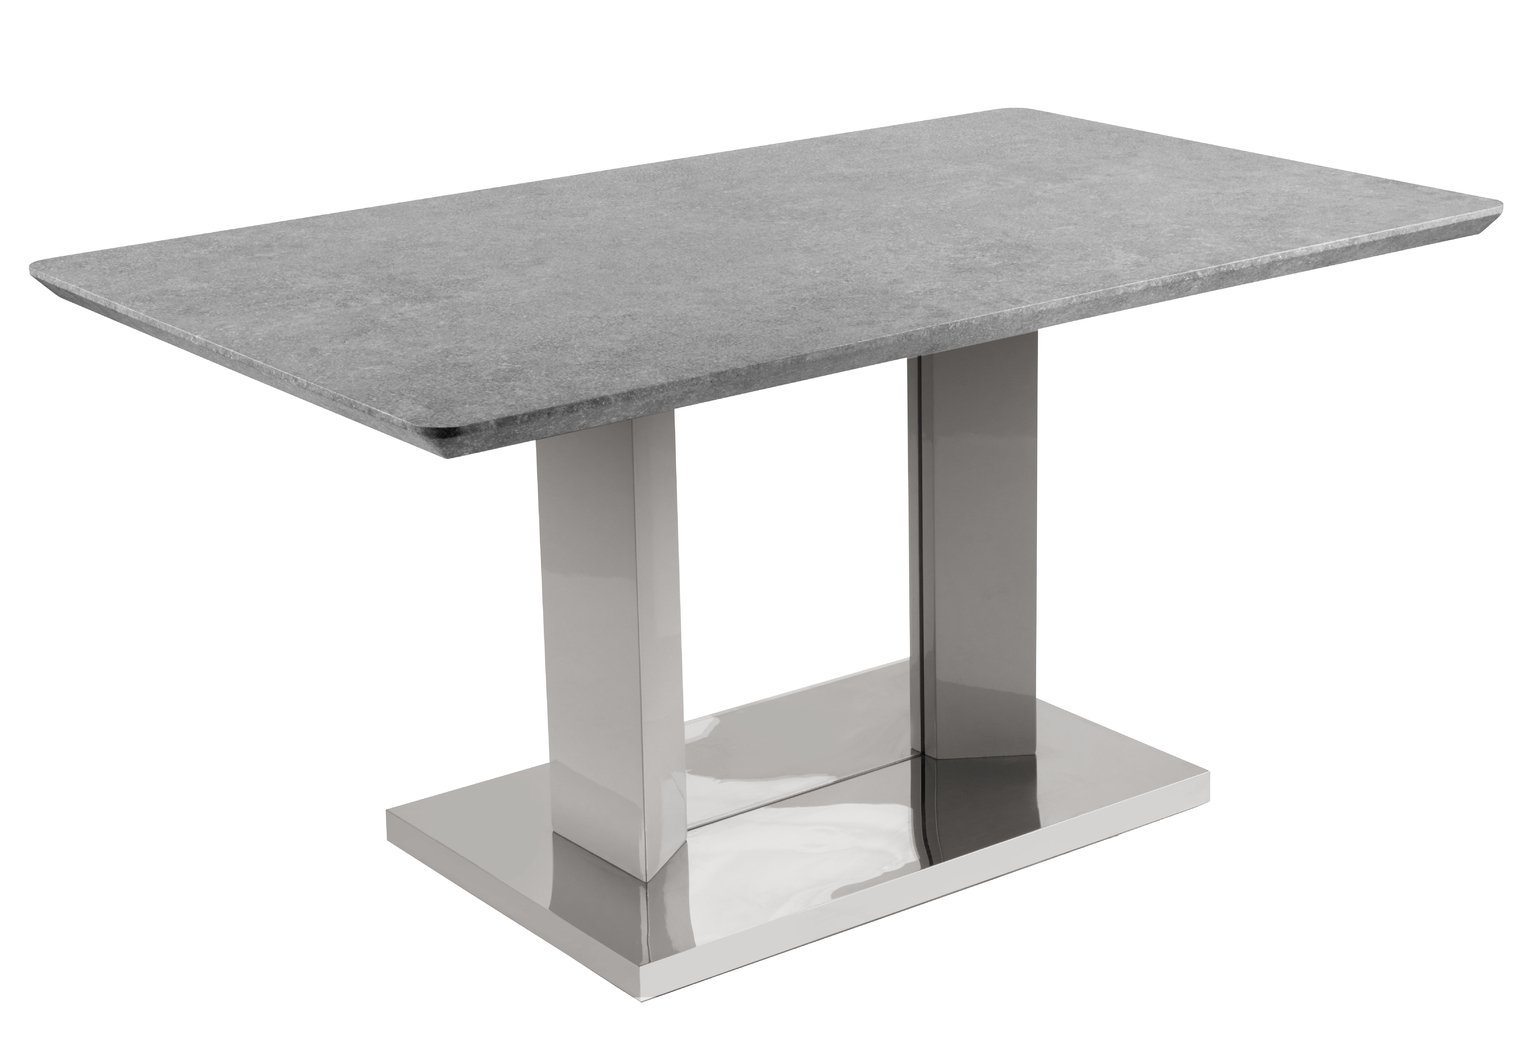 172 & Buy Argos Home Dalston Granite Effect Pedestal Dining Table | Dining tables | Argos